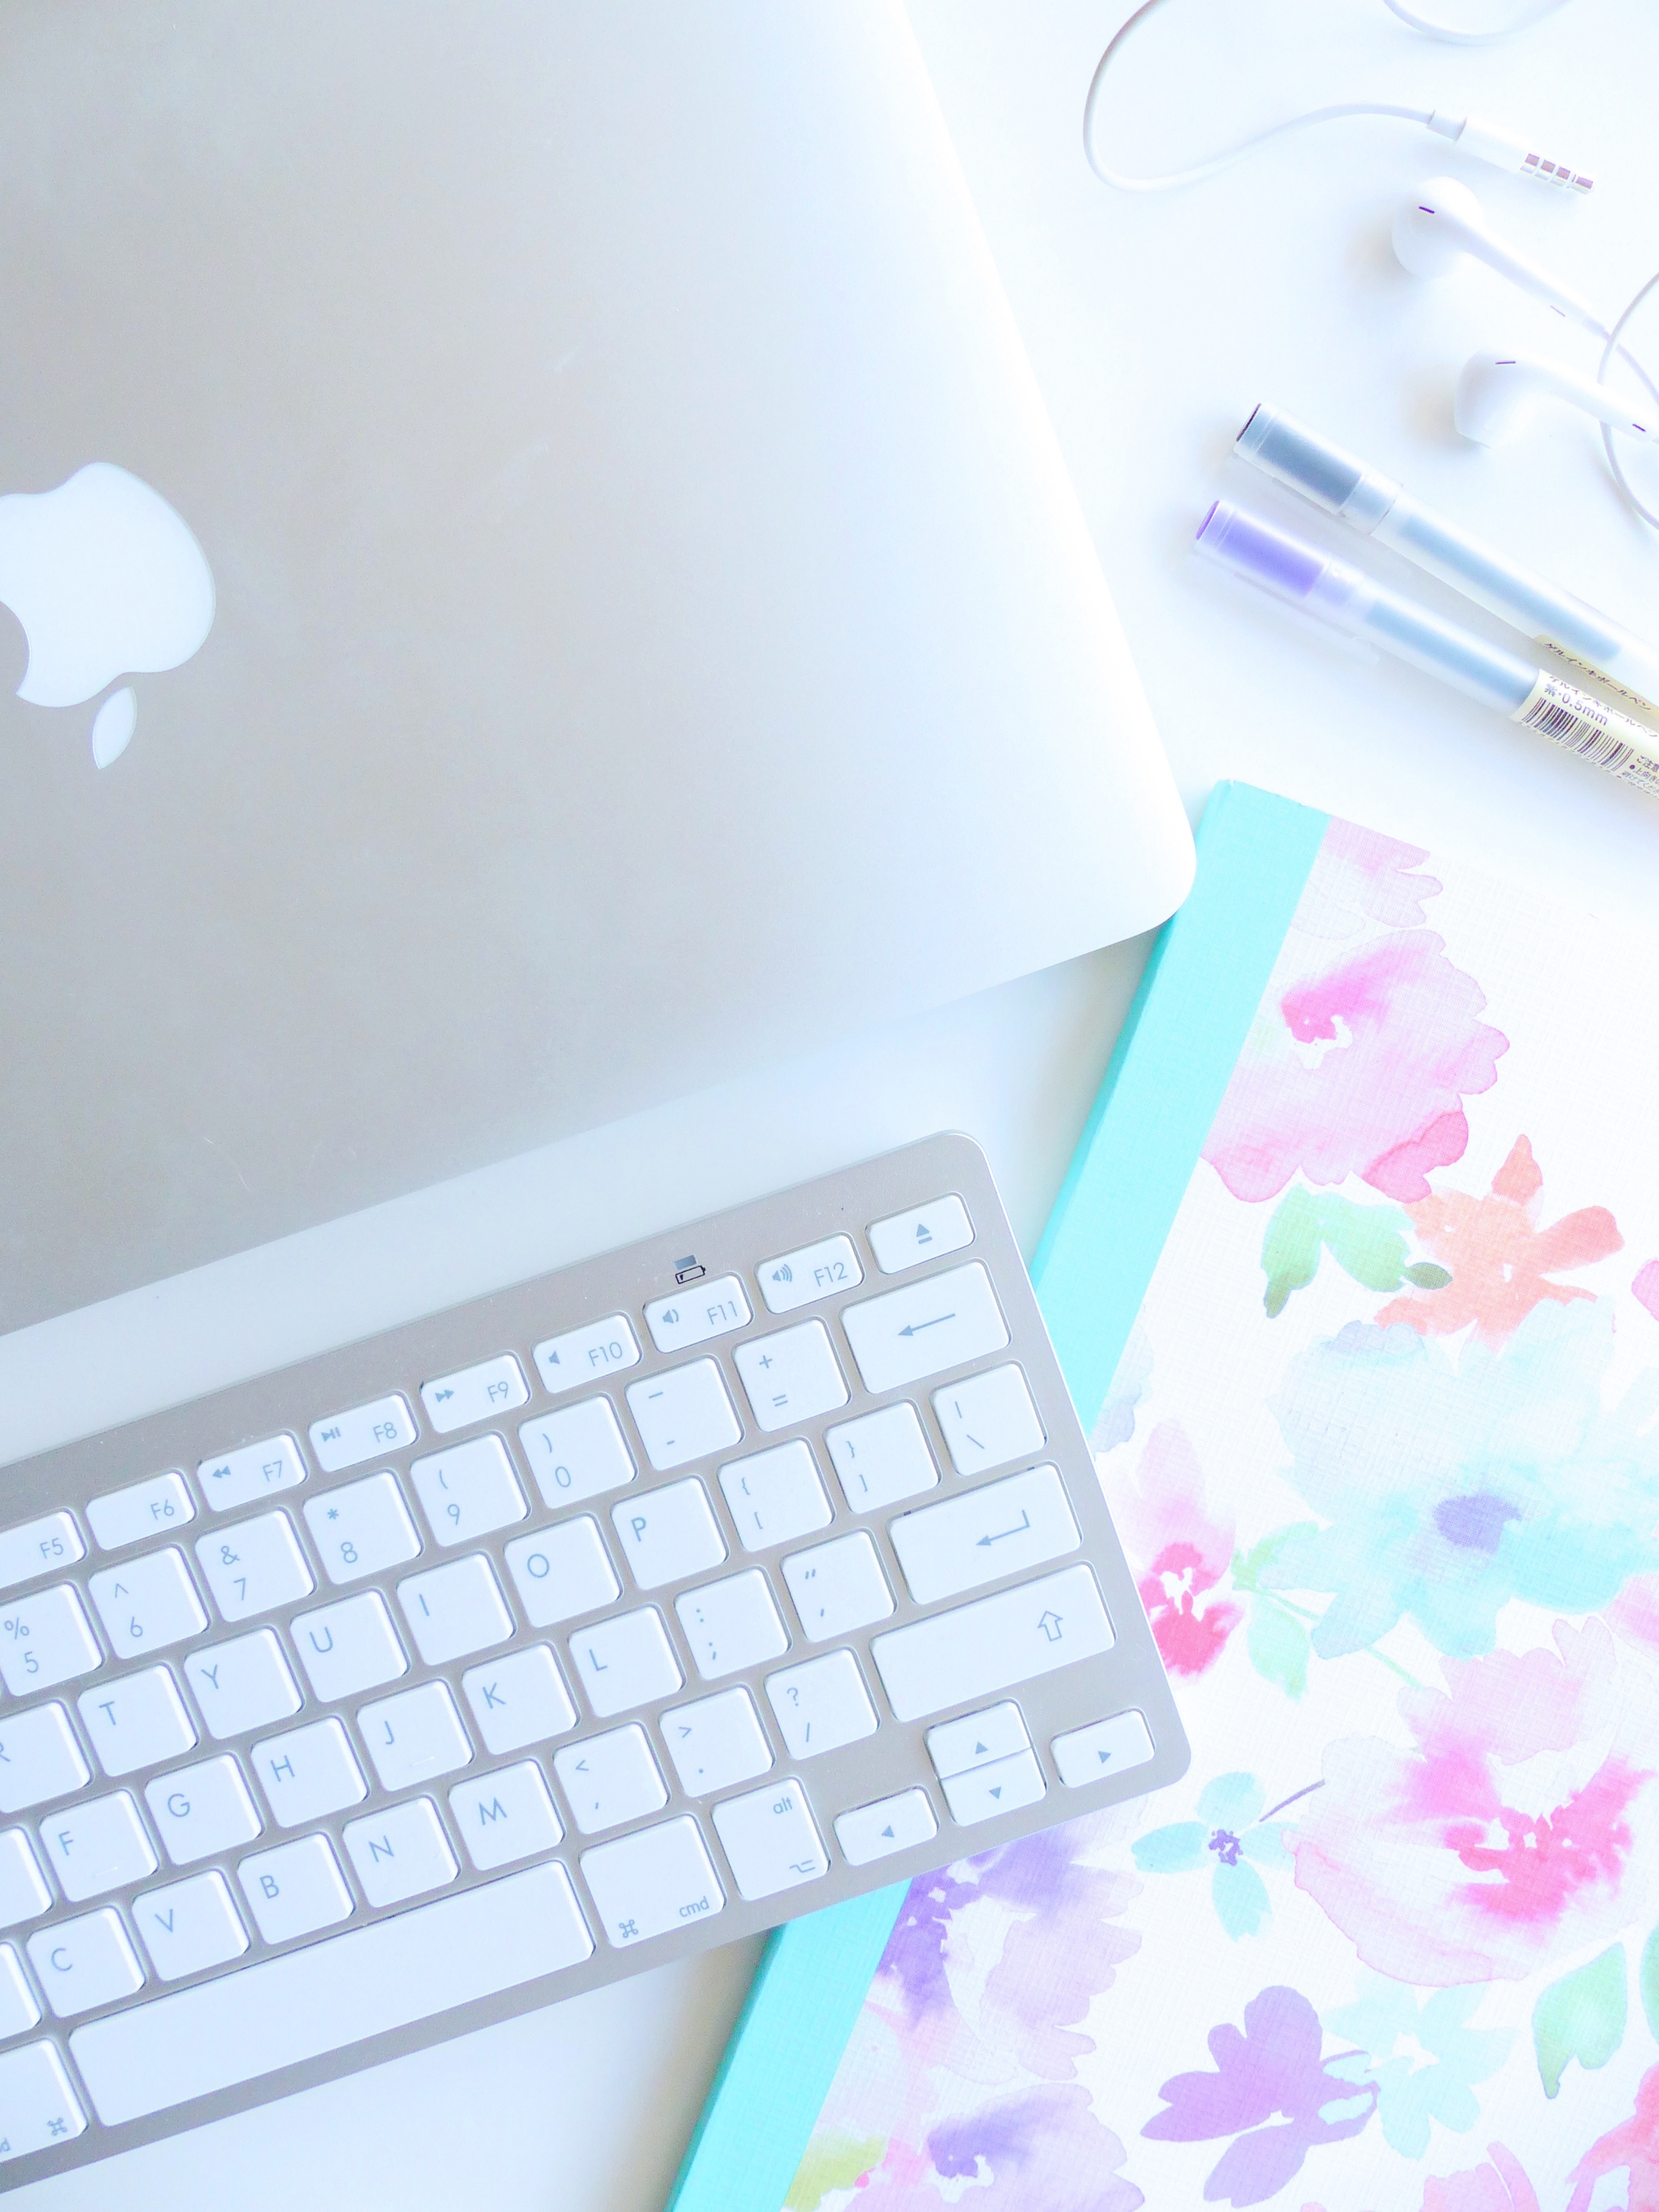 5 Traits That Separate The Very Best Bloggers From The Rest